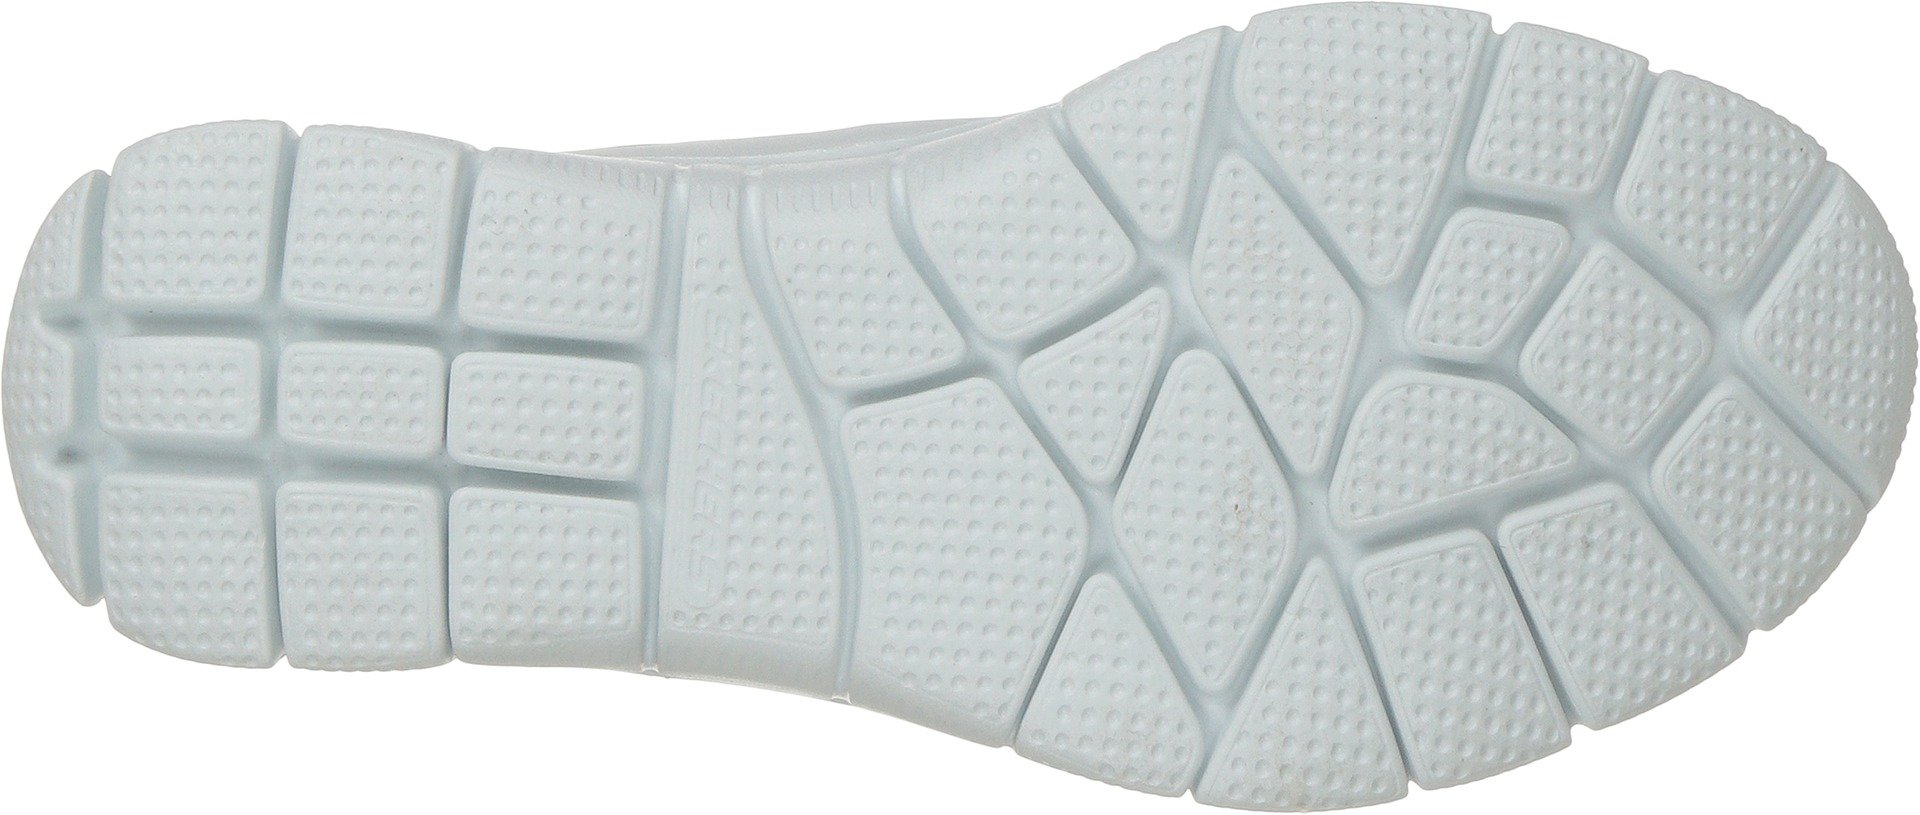 Skechers Women's Relaxed Fit: Empire - Keep Focus White 5.5 B US by Skechers (Image #3)